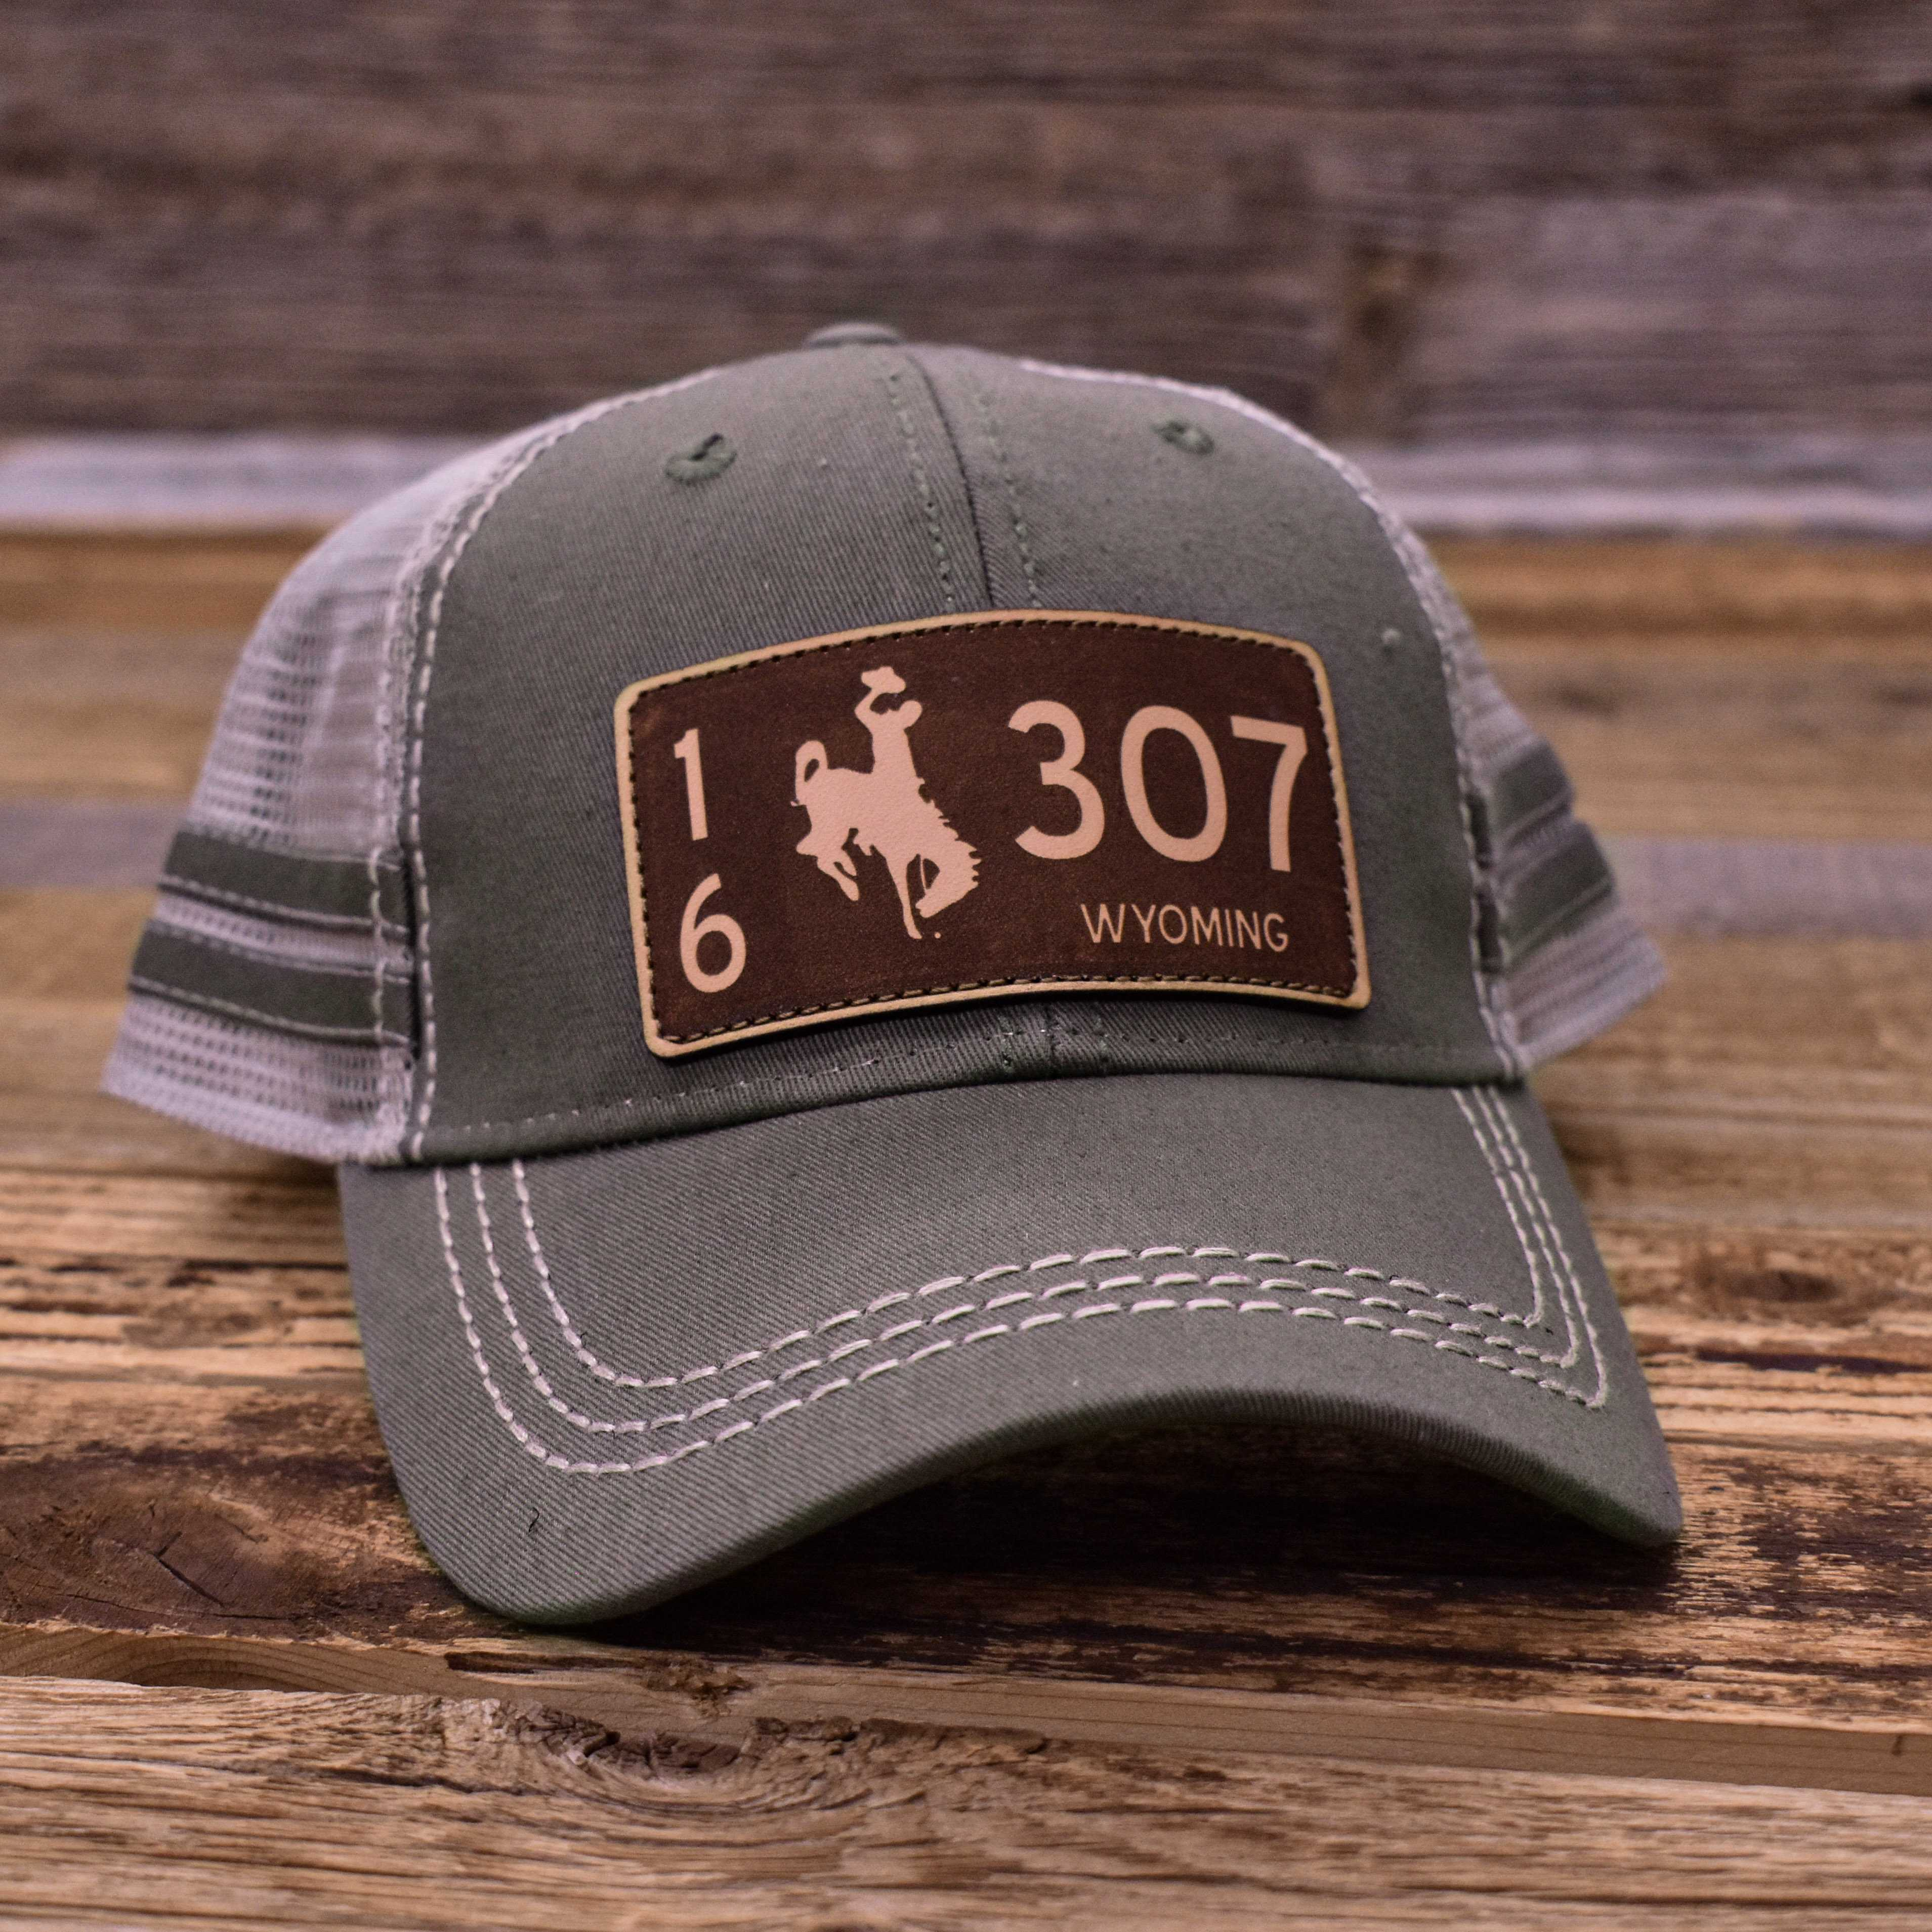 Laser Wyoming License Plate Sportsman Hats